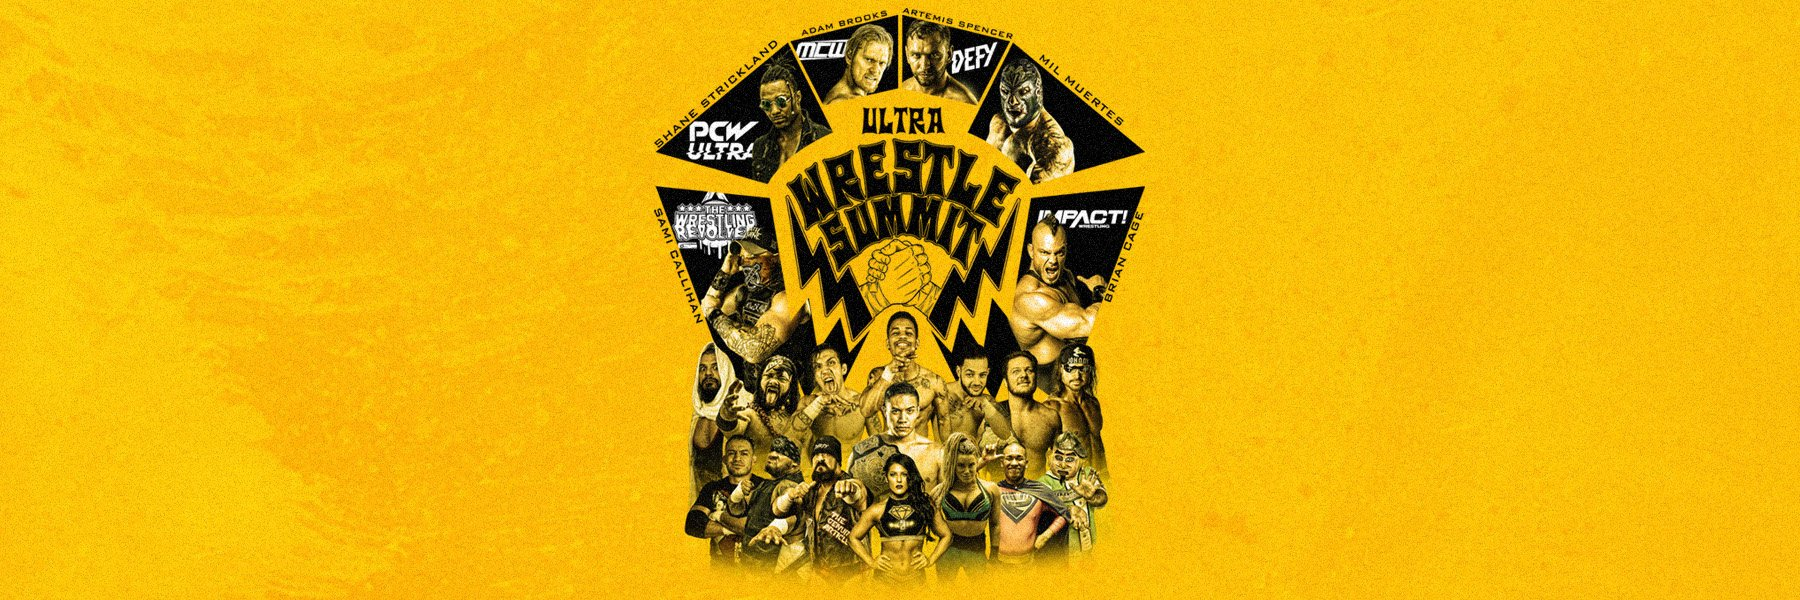 PCW ULTRA | WRESTLE SUMMIT: Subscribe $4.99mo. // Rent $2.99 // Buy $9.99